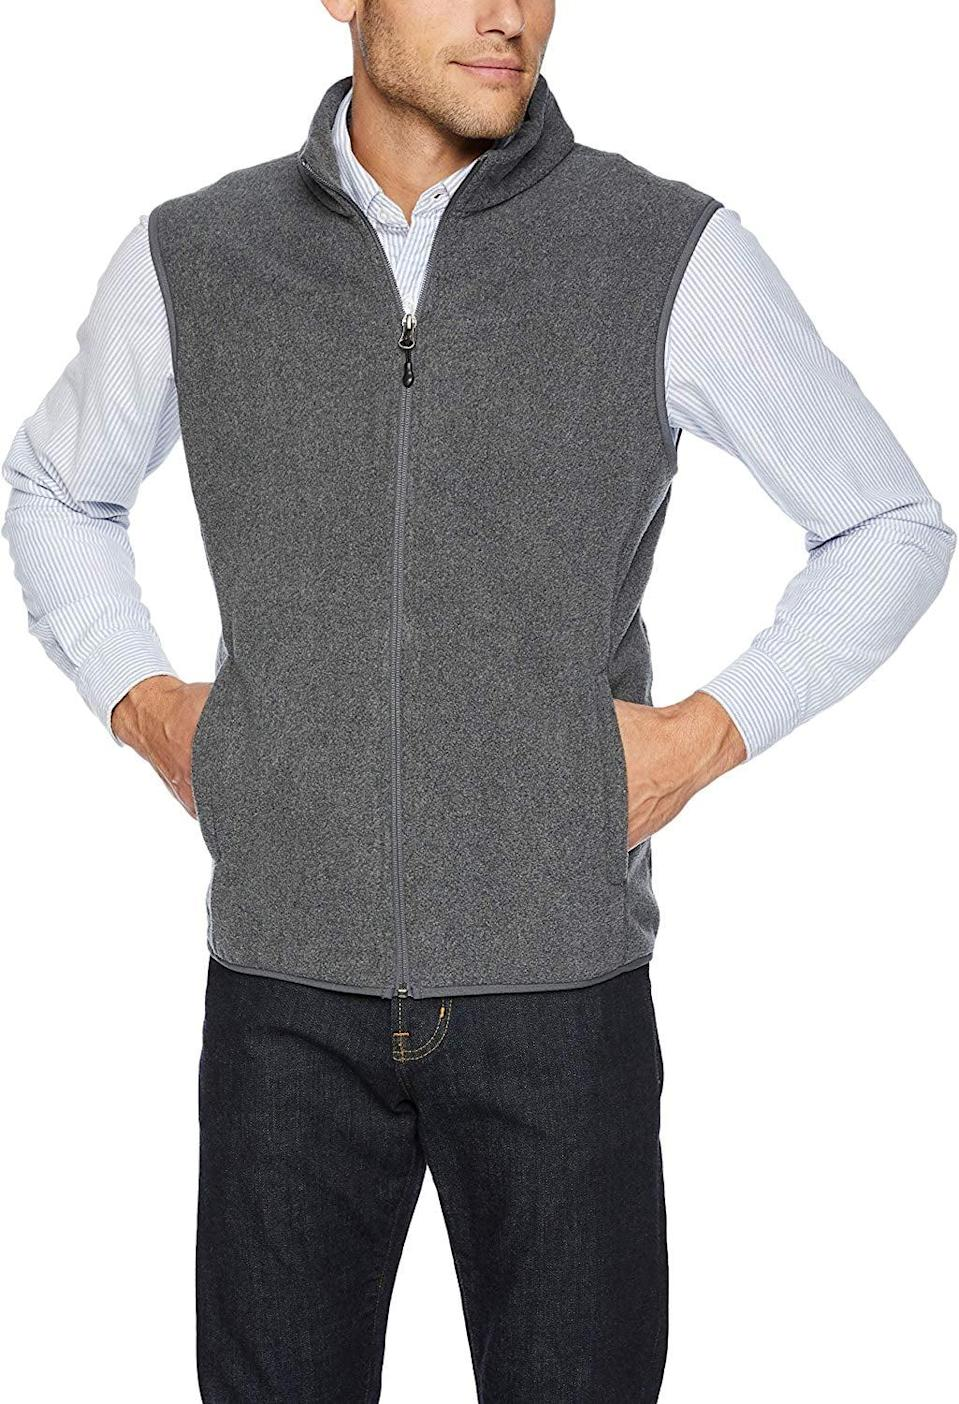 <p>This <span>Amazon Essentials Men's Full-Zip Polar Fleece Vest</span> ($20) comes in several colors.</p>